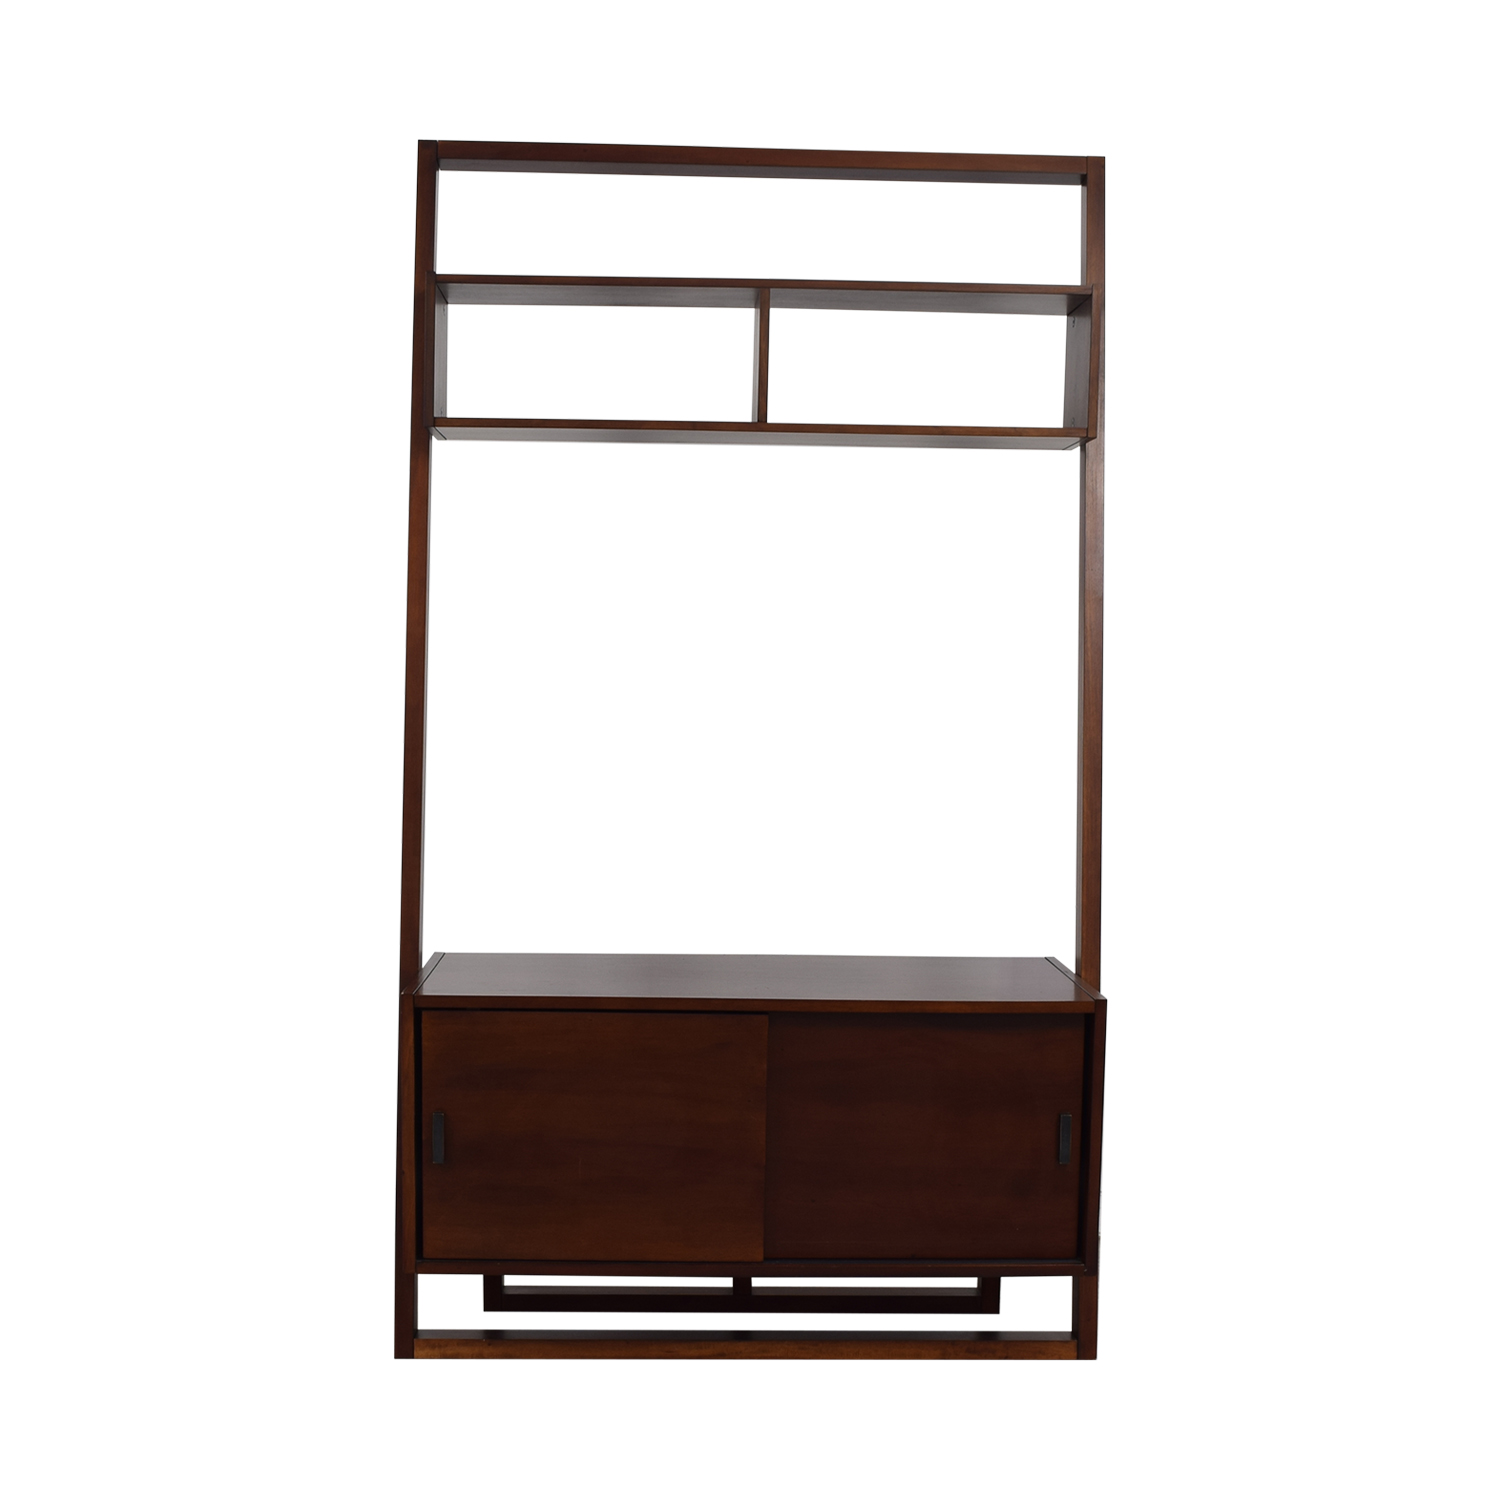 Crate & Barrel Leaning Wood Media Stand Crate and Barrel